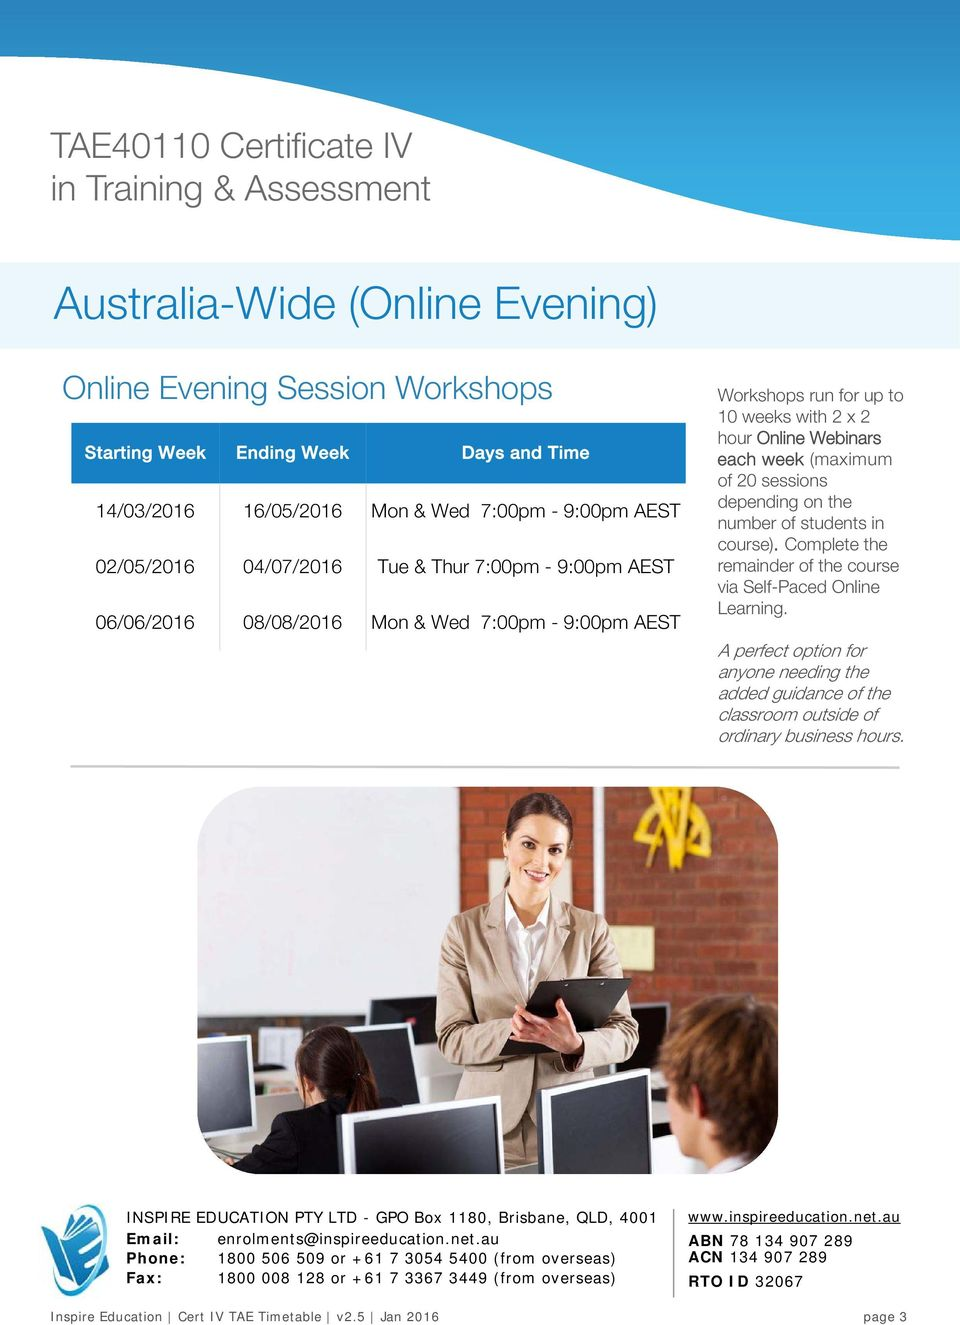 Online Webinars each week (maximum of 20 sessions depending on the number of students in course).